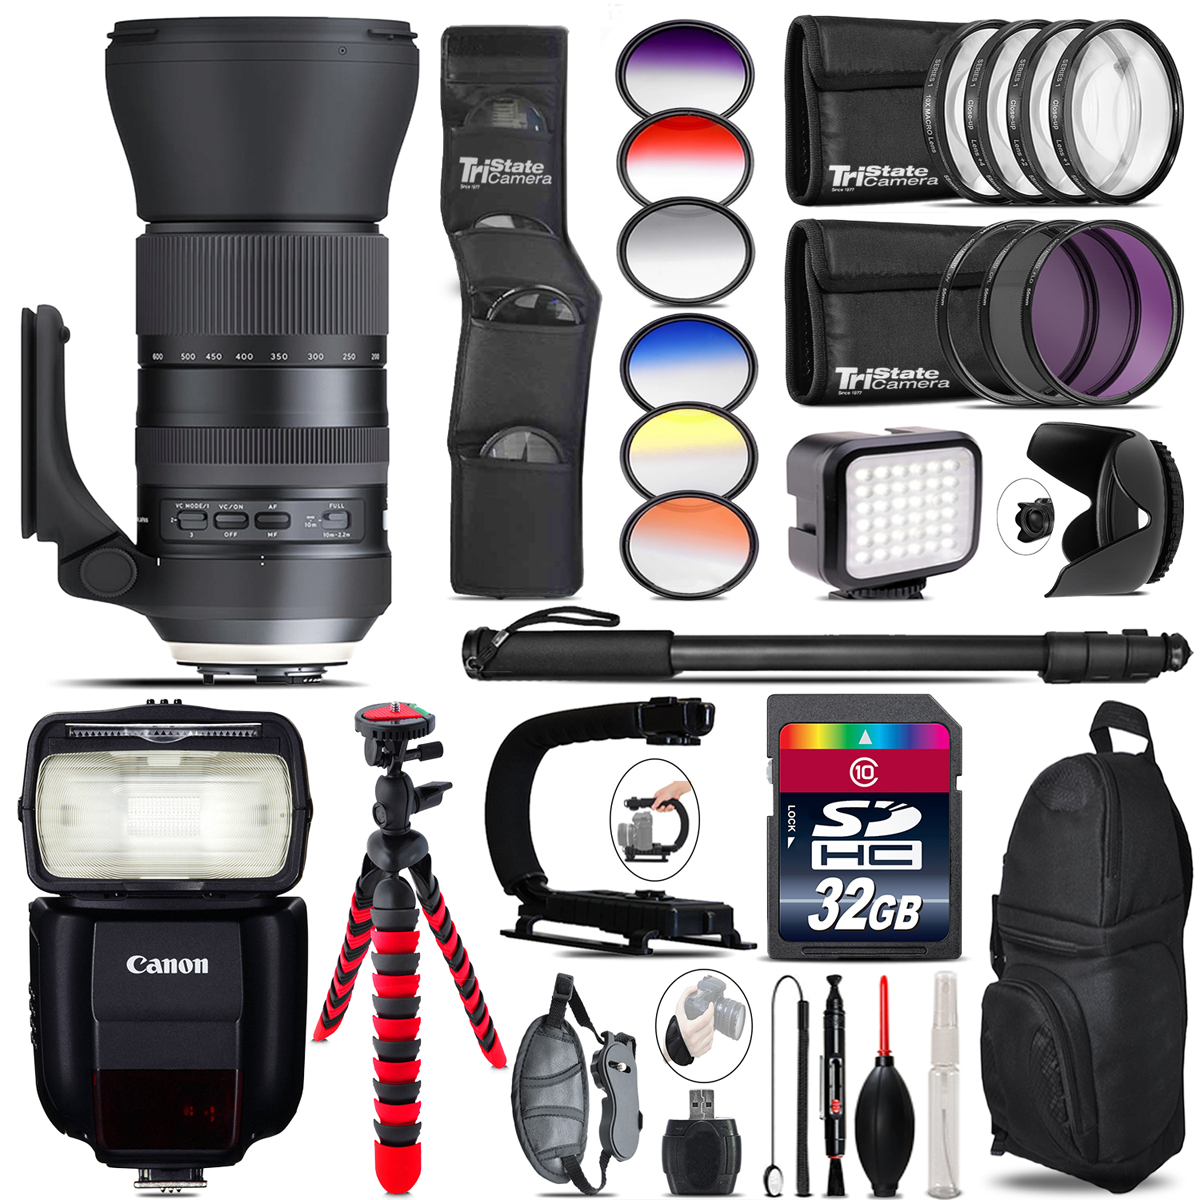 Tamron 150-600mm G2 for Canon + Speedlite 430EX + LED - 32GB Accessory Kit *FREE SHIPPING*